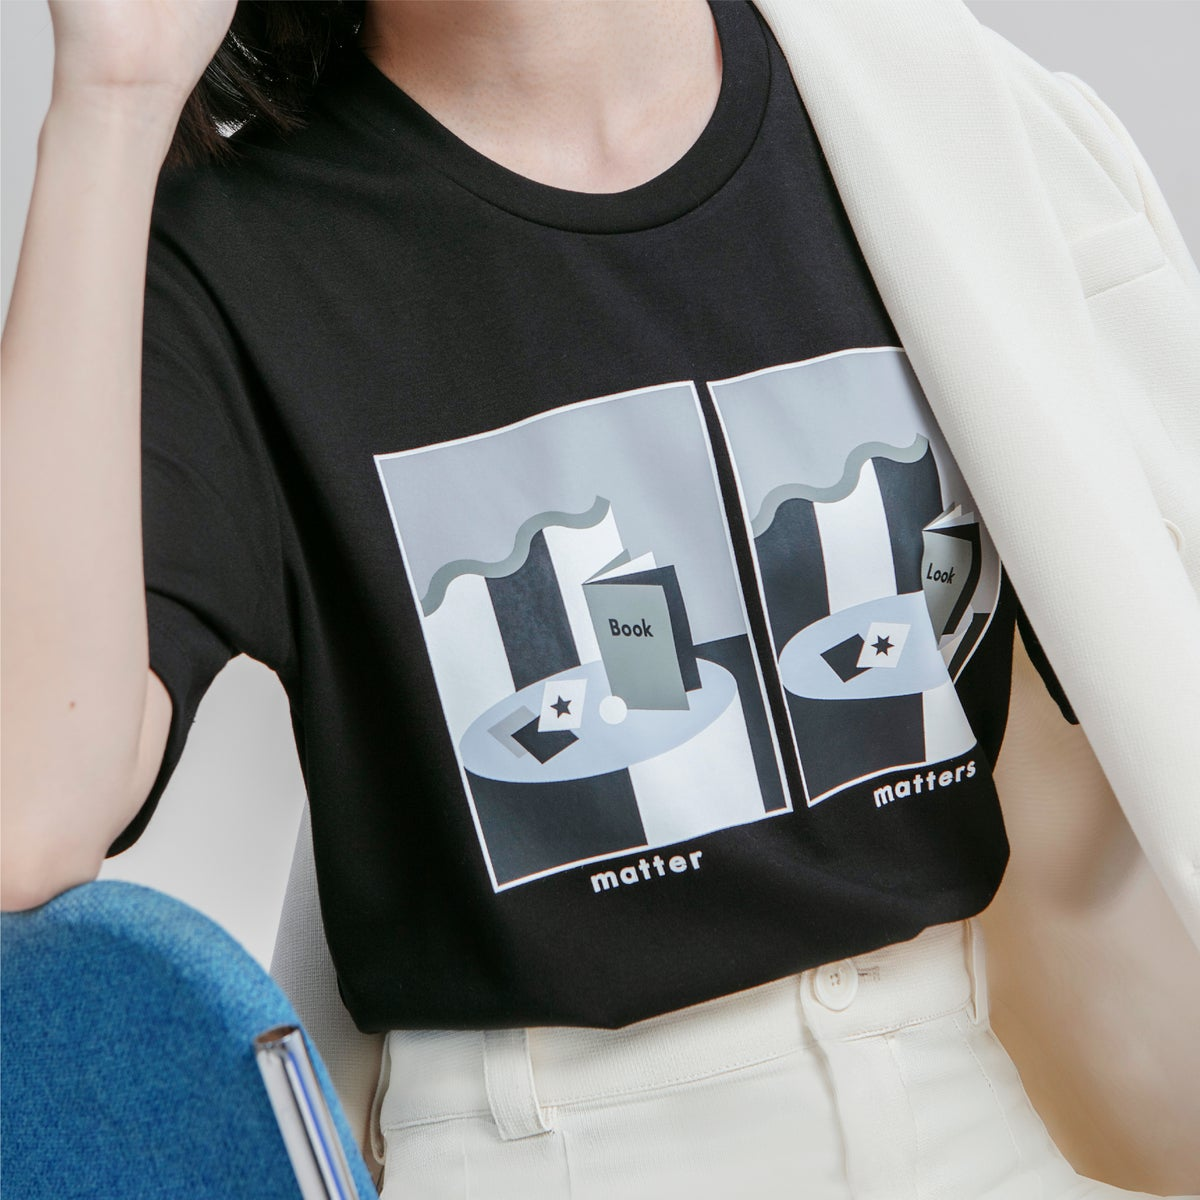 Image of Matter Matters spot the differences T-Shirt - Black